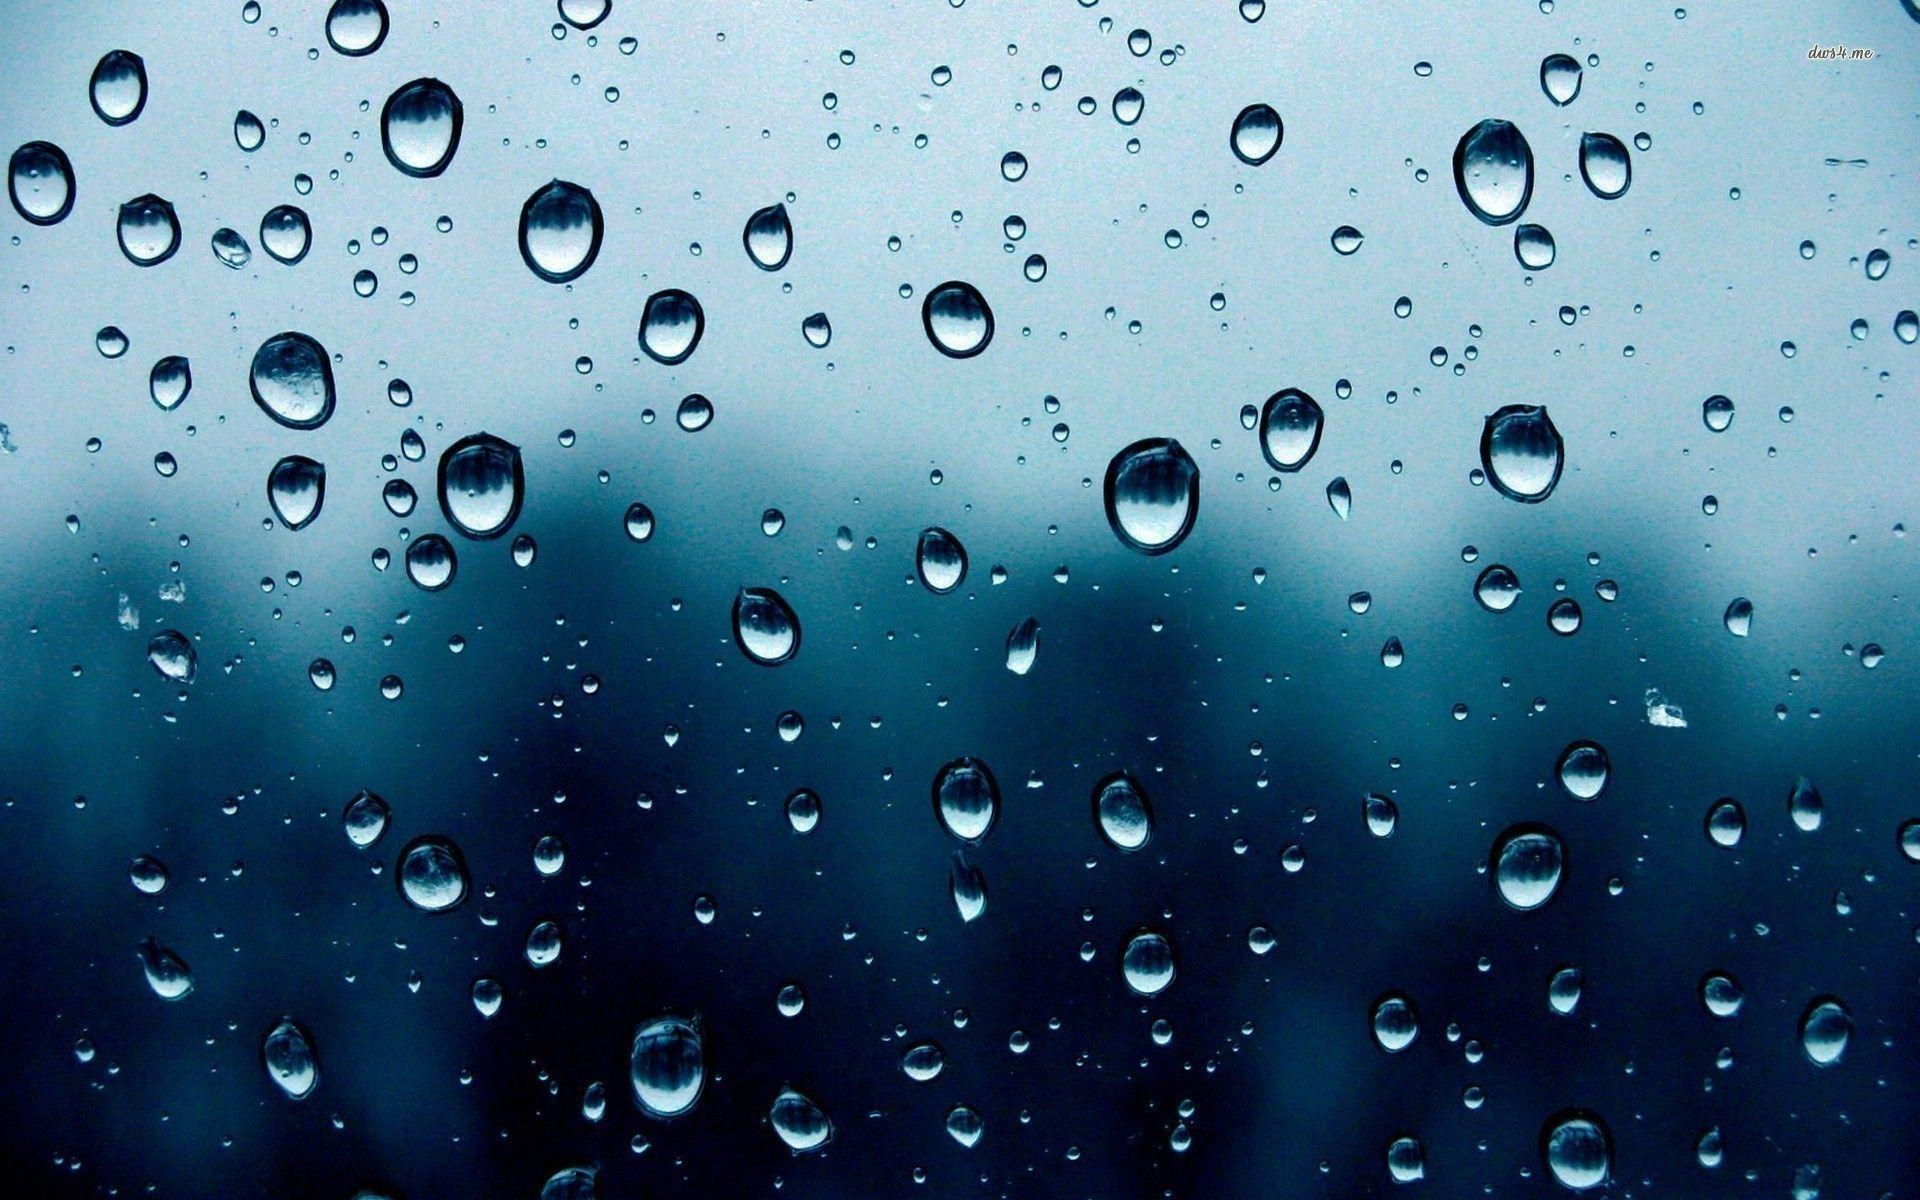 Rain Drop Wallpapers - Wallpaper Cave